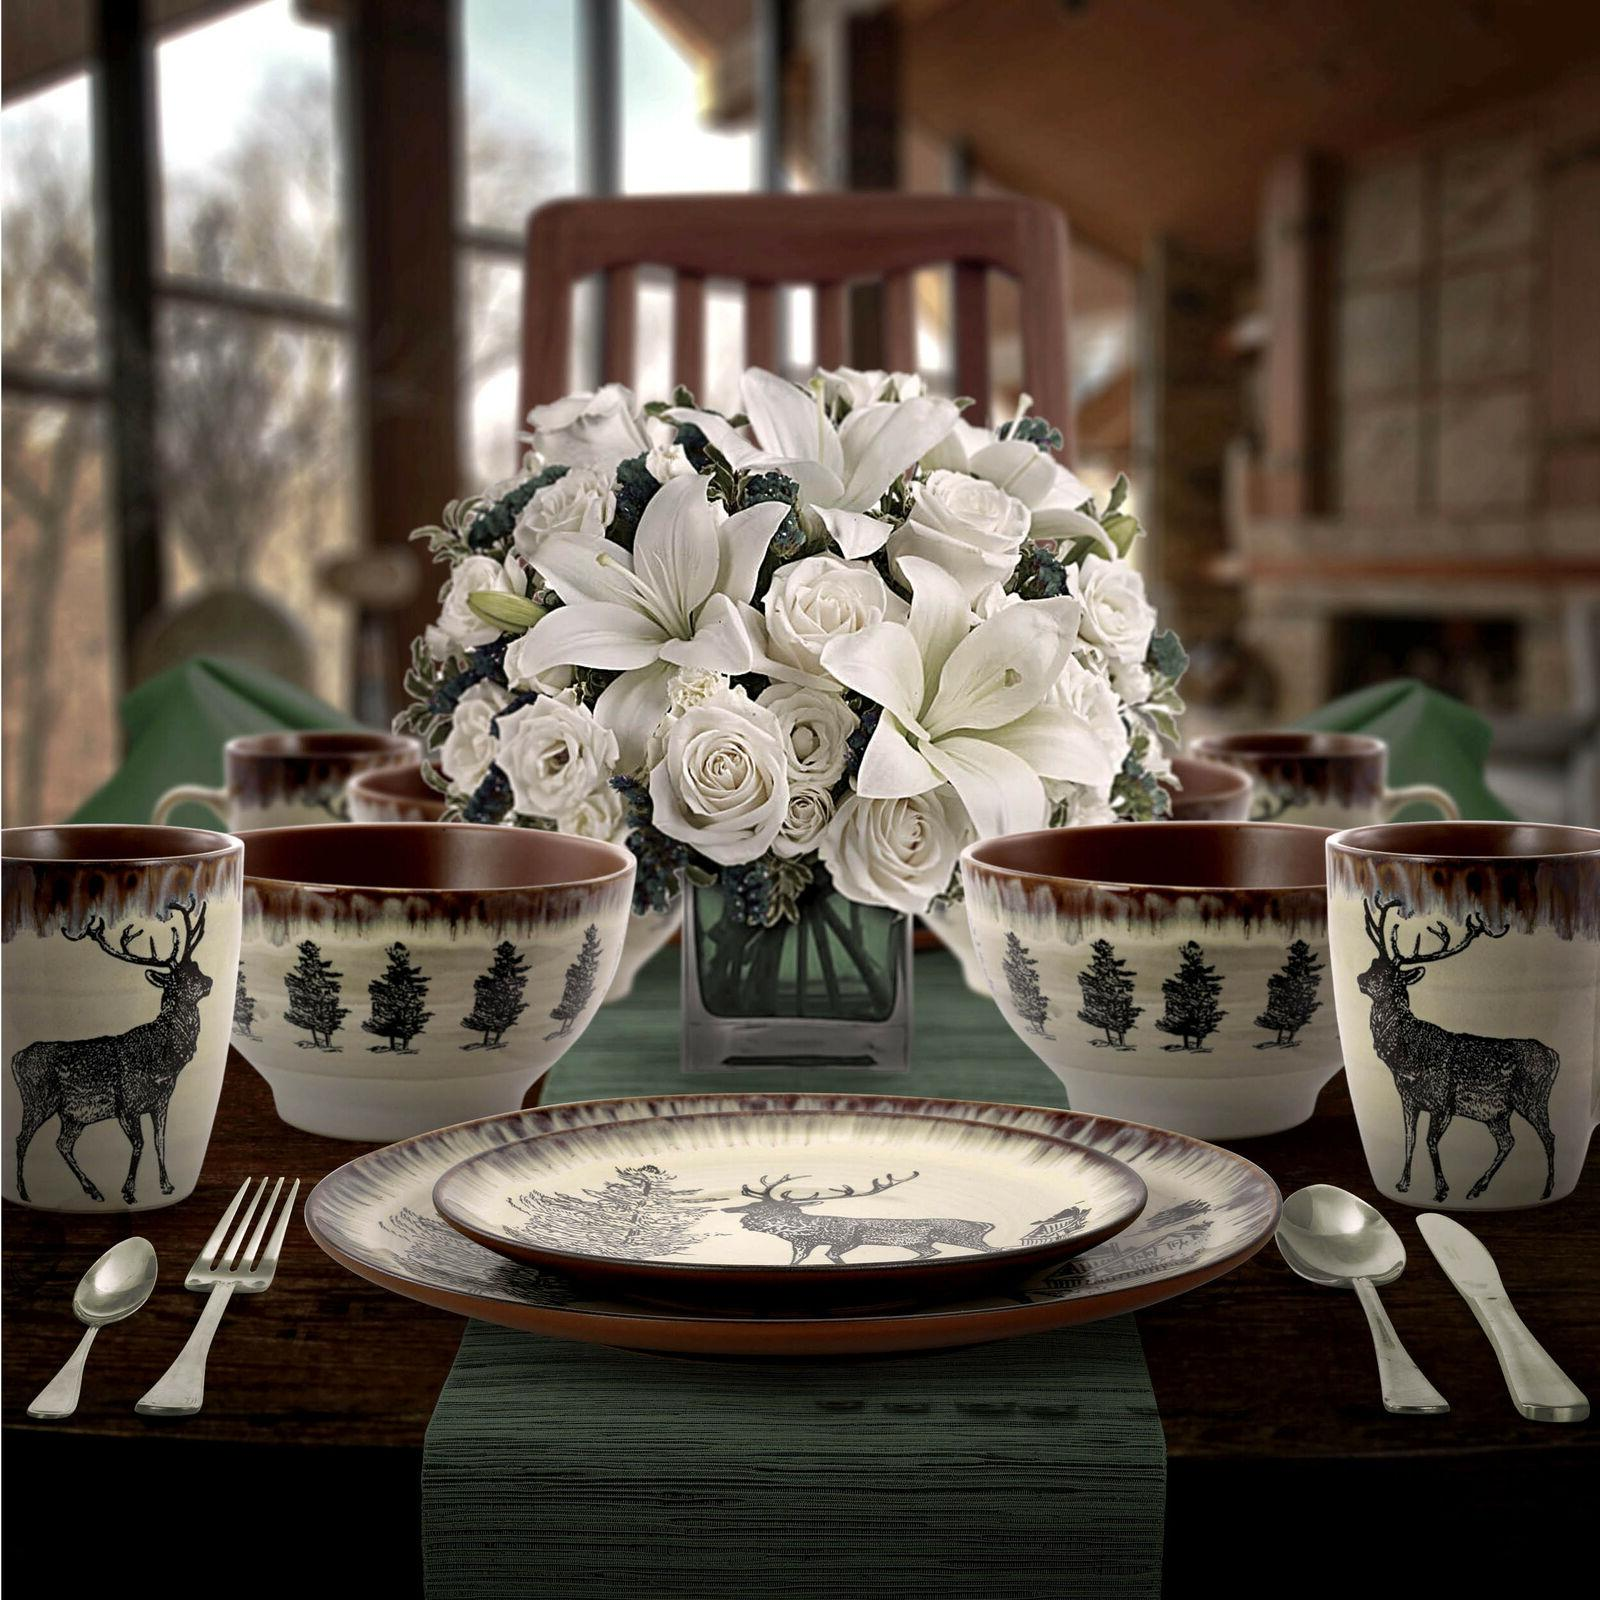 Rustic Dinnerware Farmhouse Country Dinner Plates Dishes